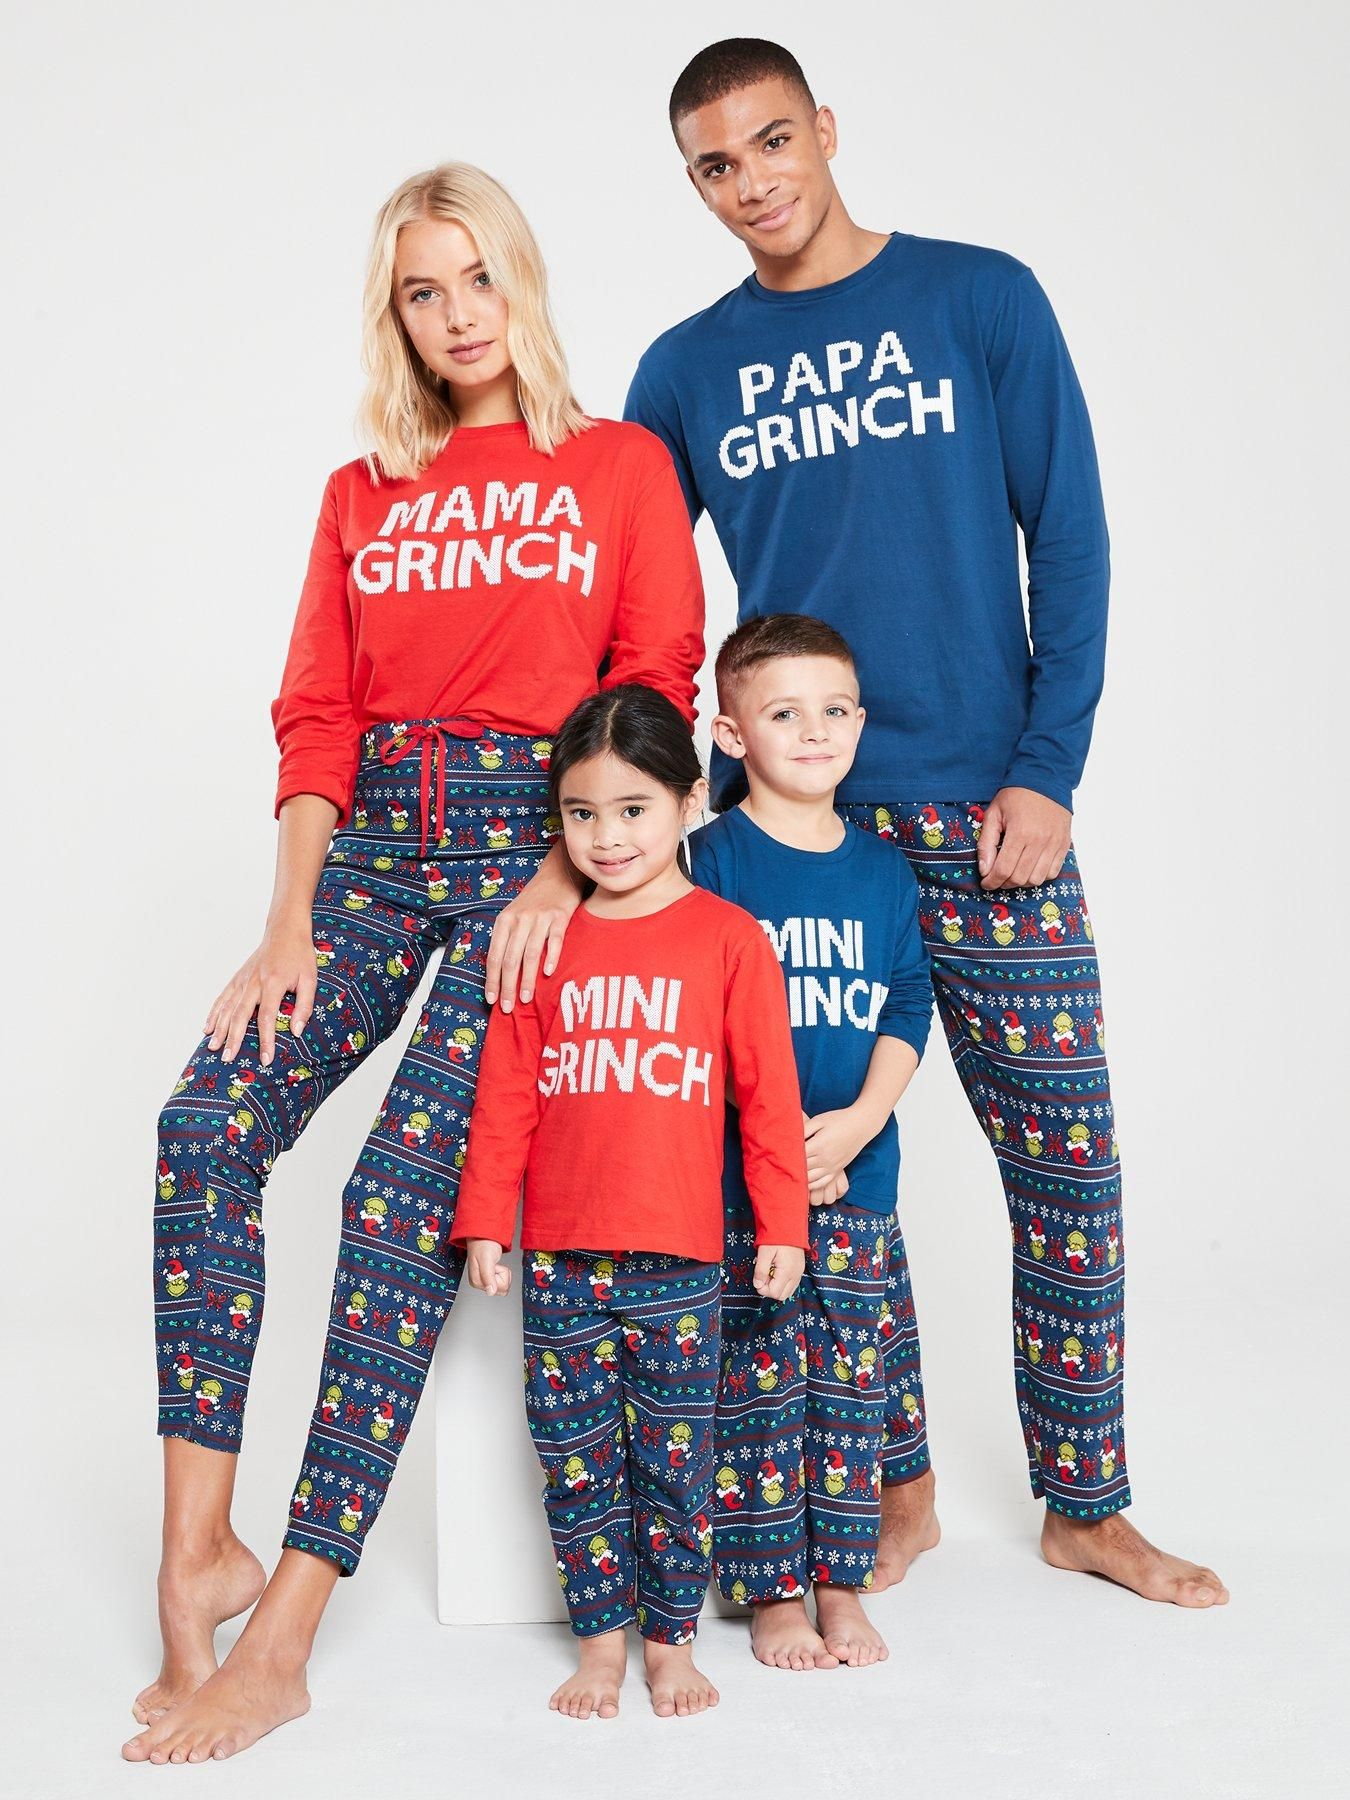 V By Very Mama Grinch Family Christmas Pj Set Red/Navy